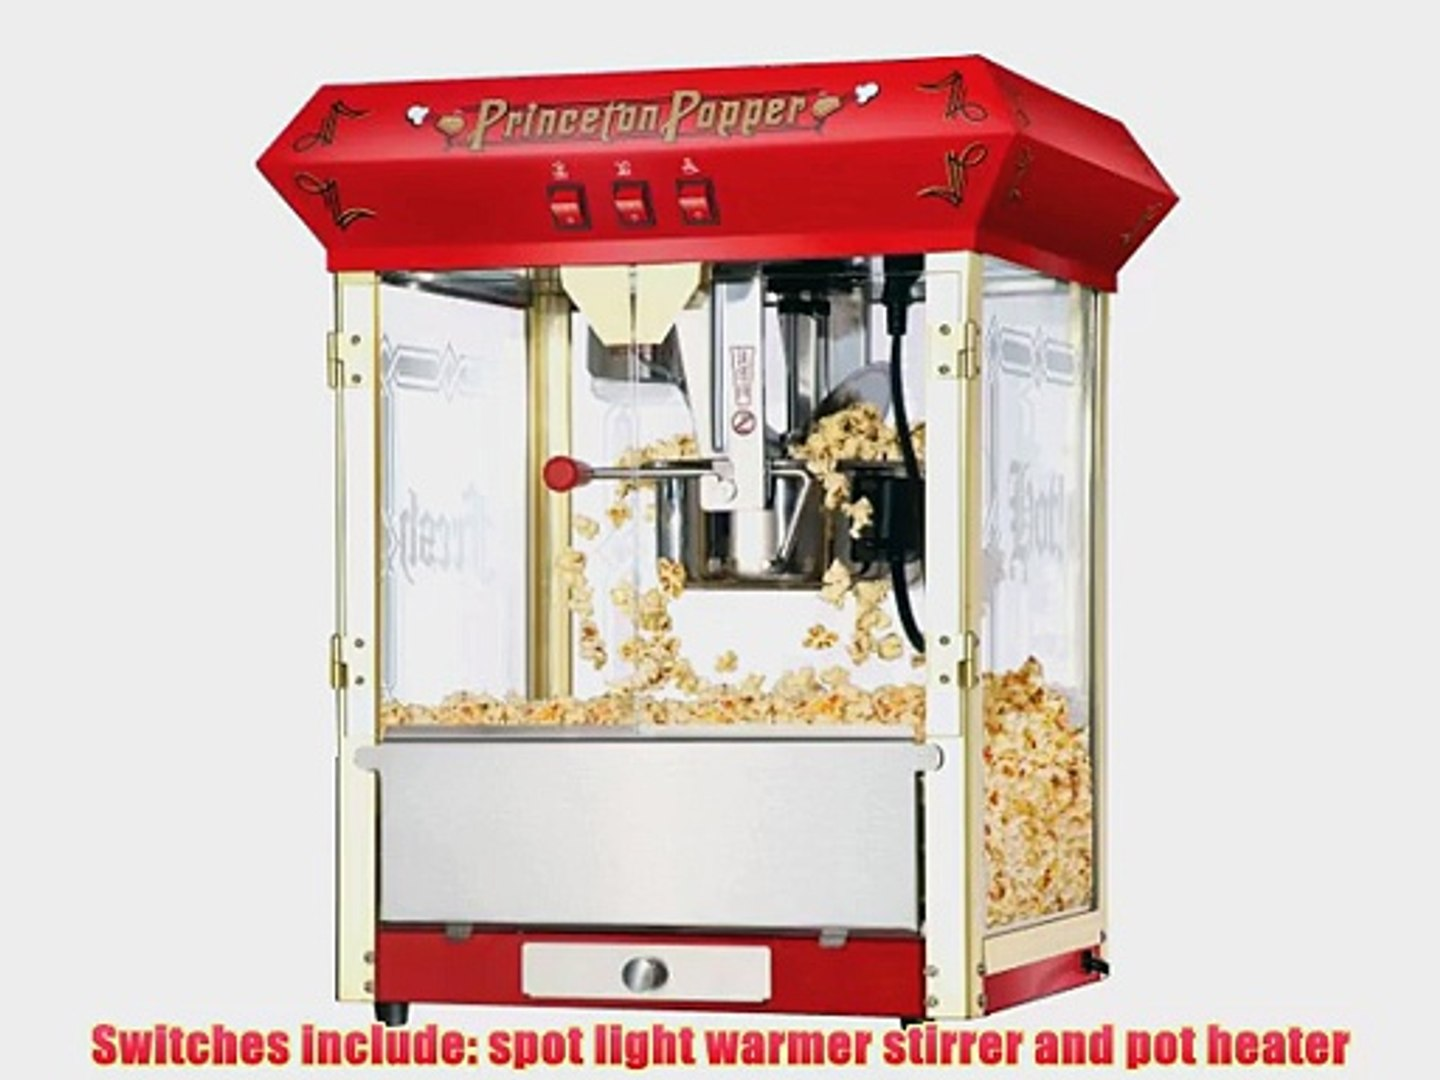 Great Northern Popcorn Red Princeton 8 Oz Ounce Bar Style Antique Popcorn Machine Video Dailymotion